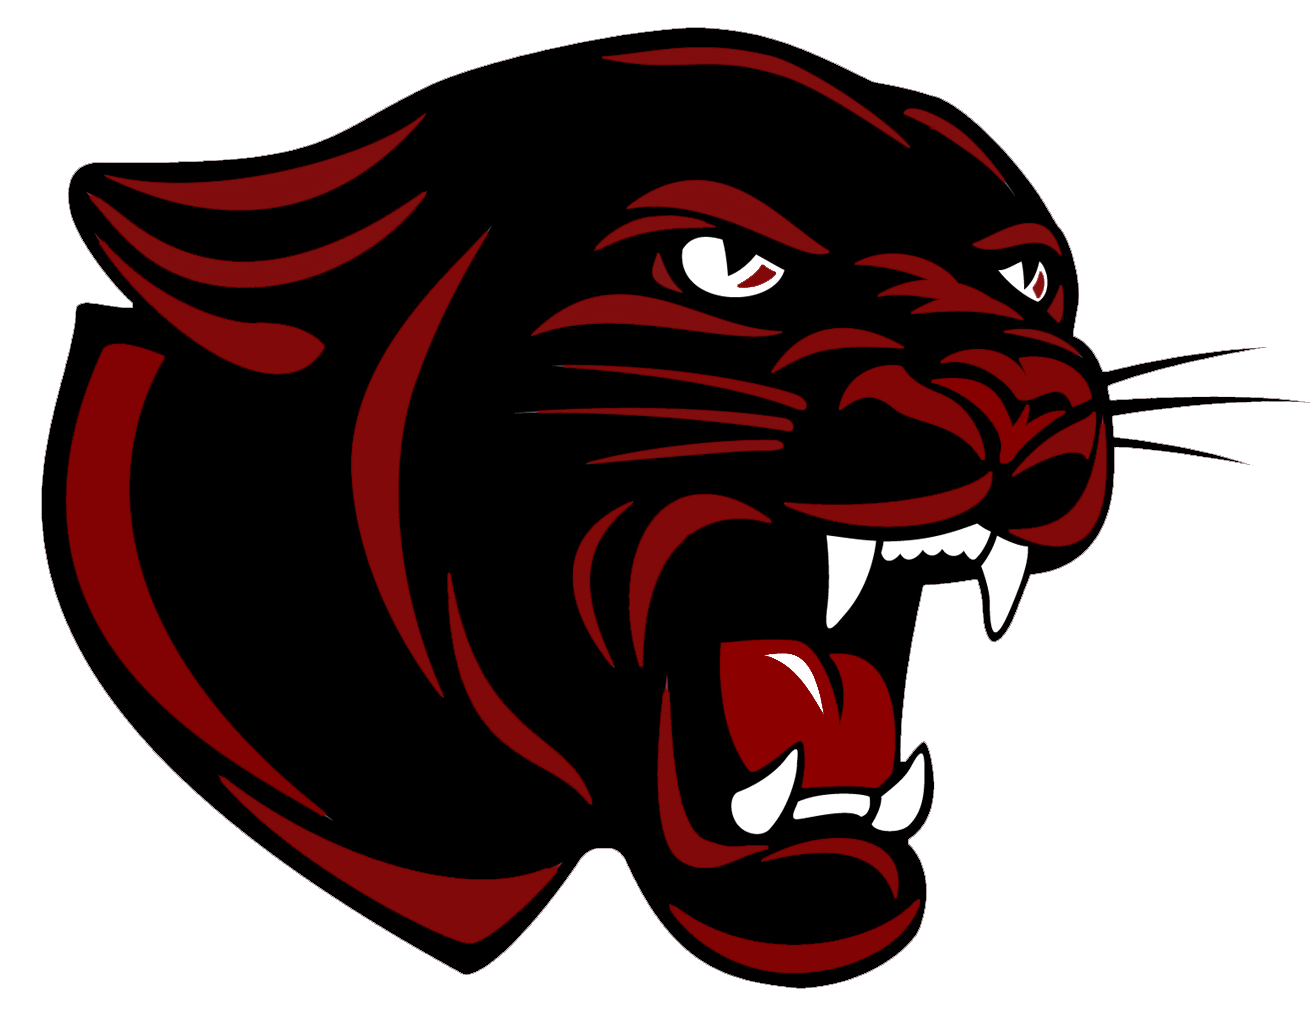 Panther clipart sport. The heber springs panthers